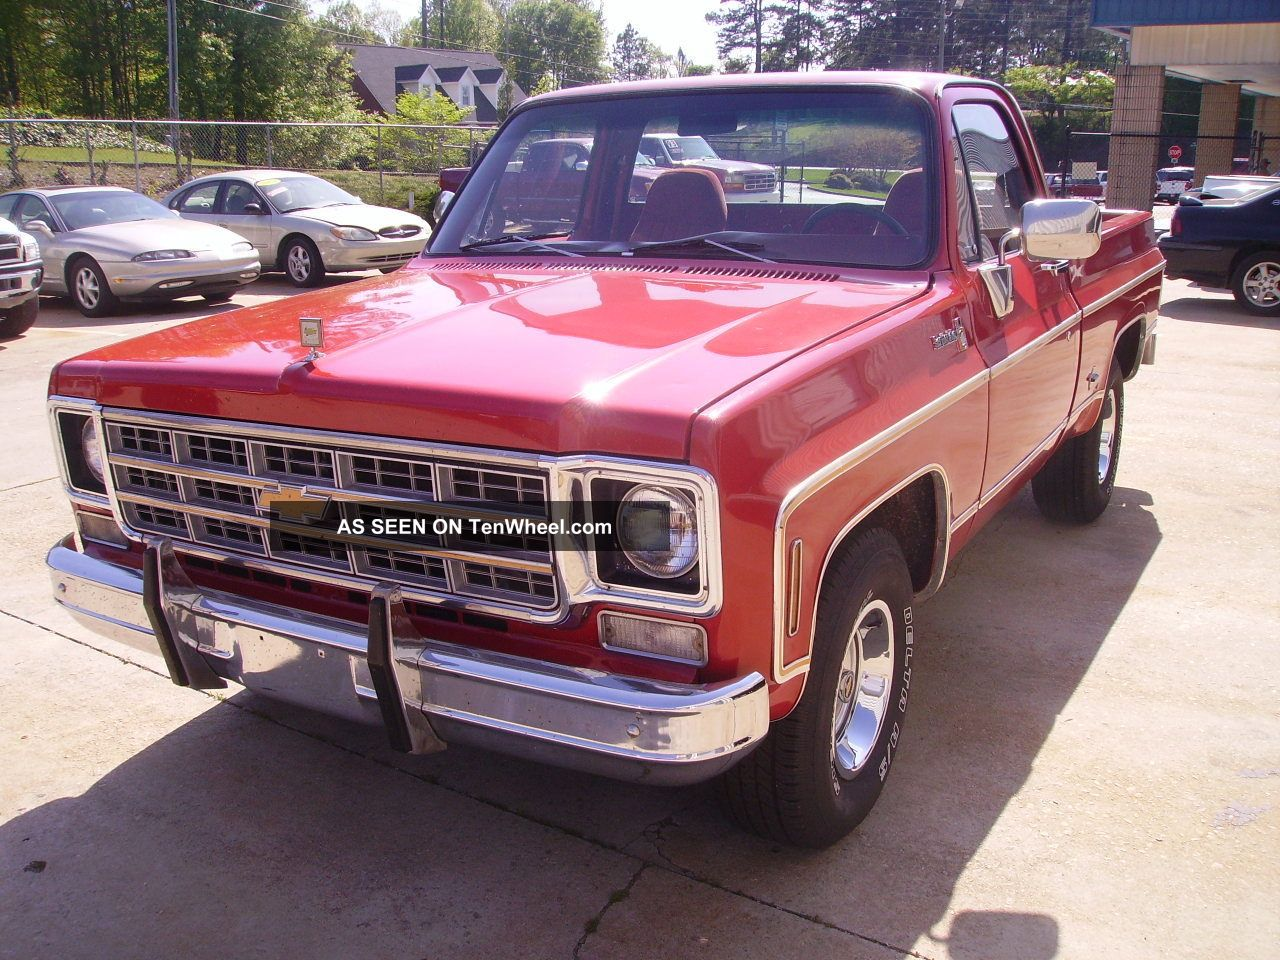 Chevy Scottsdale Truck Factory Bb Engine P S P B Factory A C Driver Lgw on 1977 Dodge Power Wagon 150 Specs